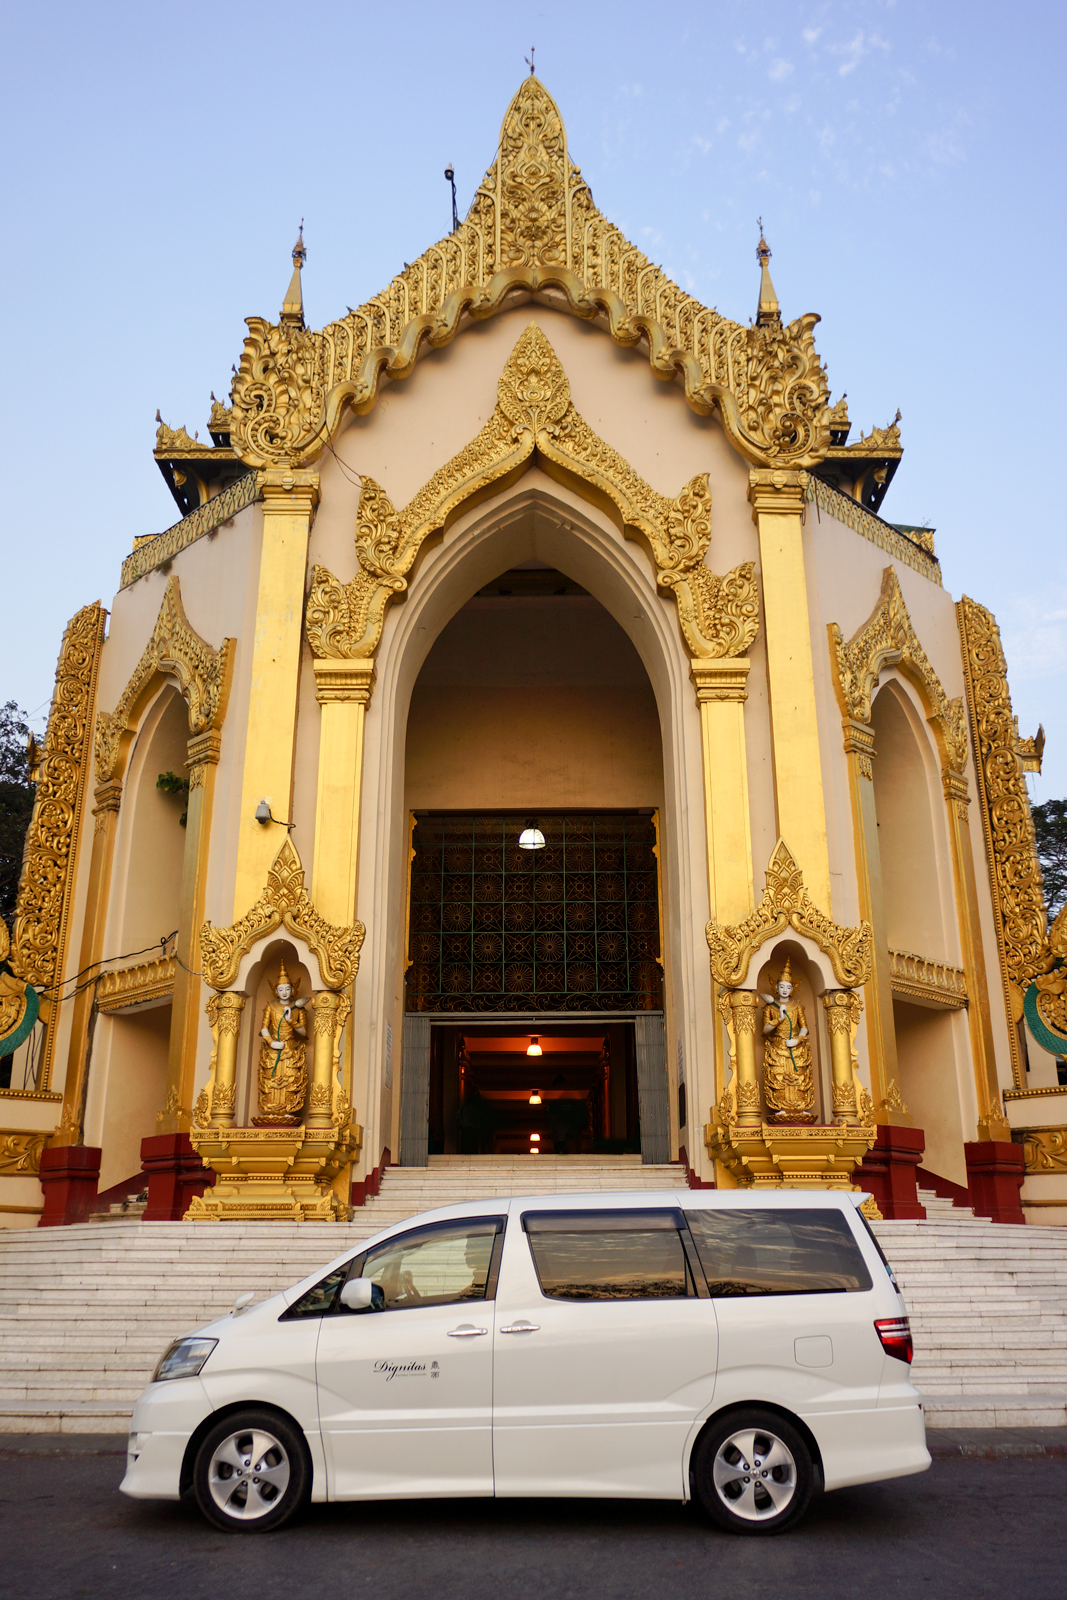 The entrance of the Shwedagon Pagoda, best seen during sunset